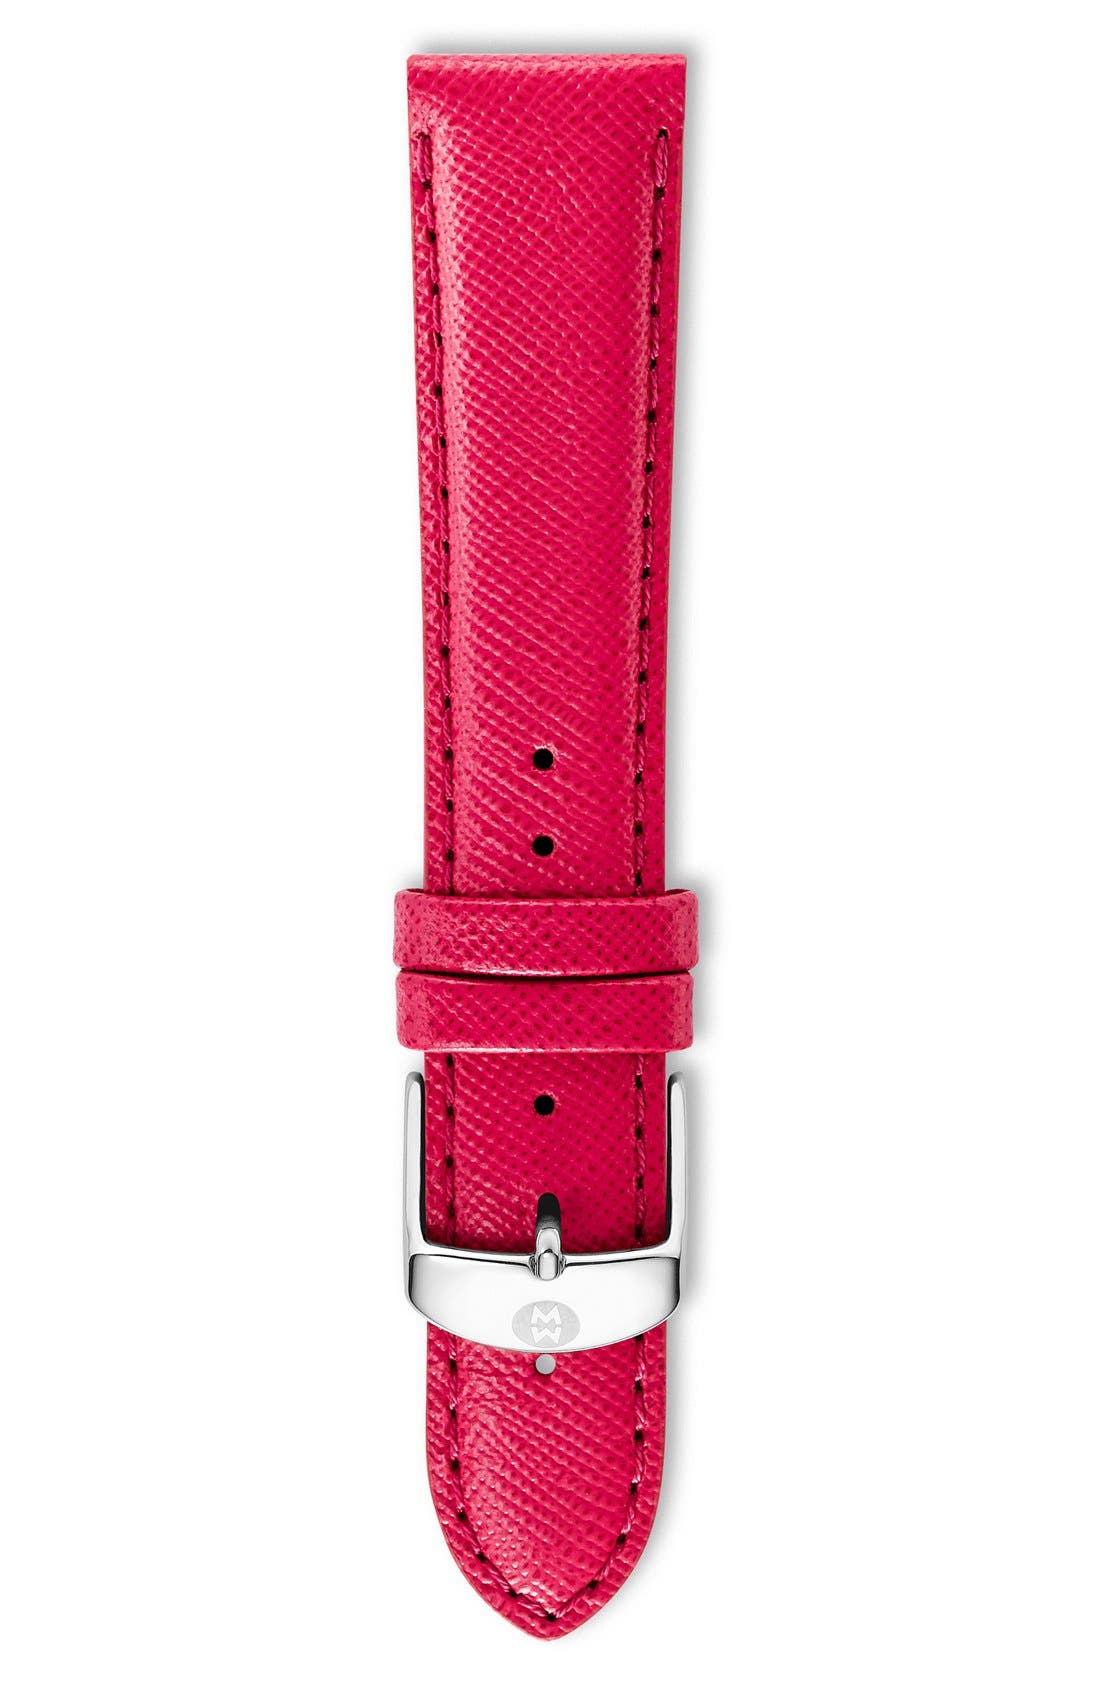 18mm Saffiano Leather Watch Strap,                             Main thumbnail 5, color,